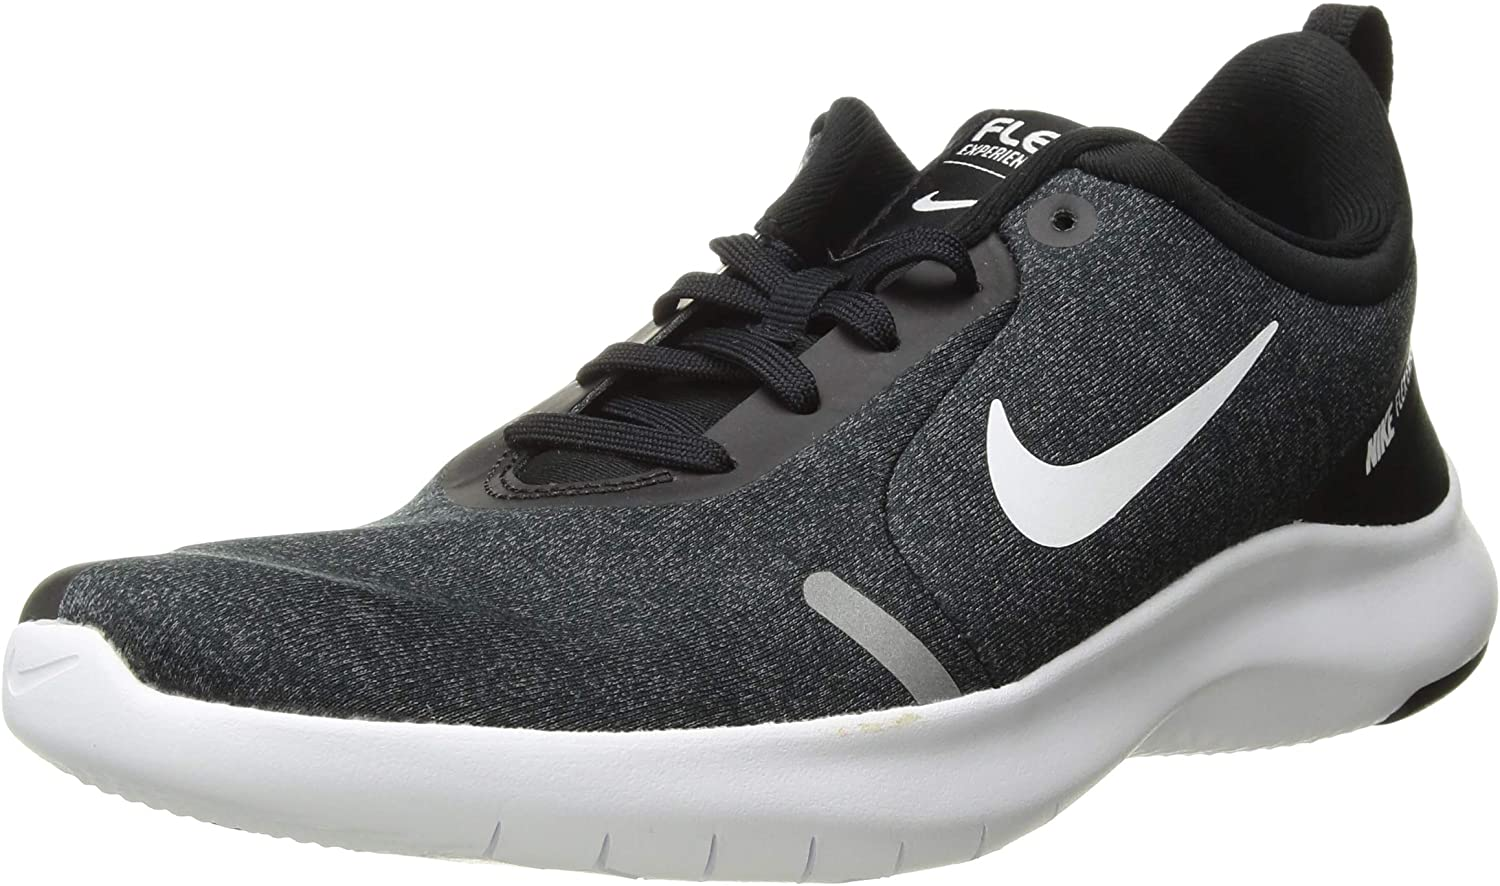 Nike Women's Flex Experience Run Shoe, Black/White-Cool Grey-Reflective Silver, 8 Wide US